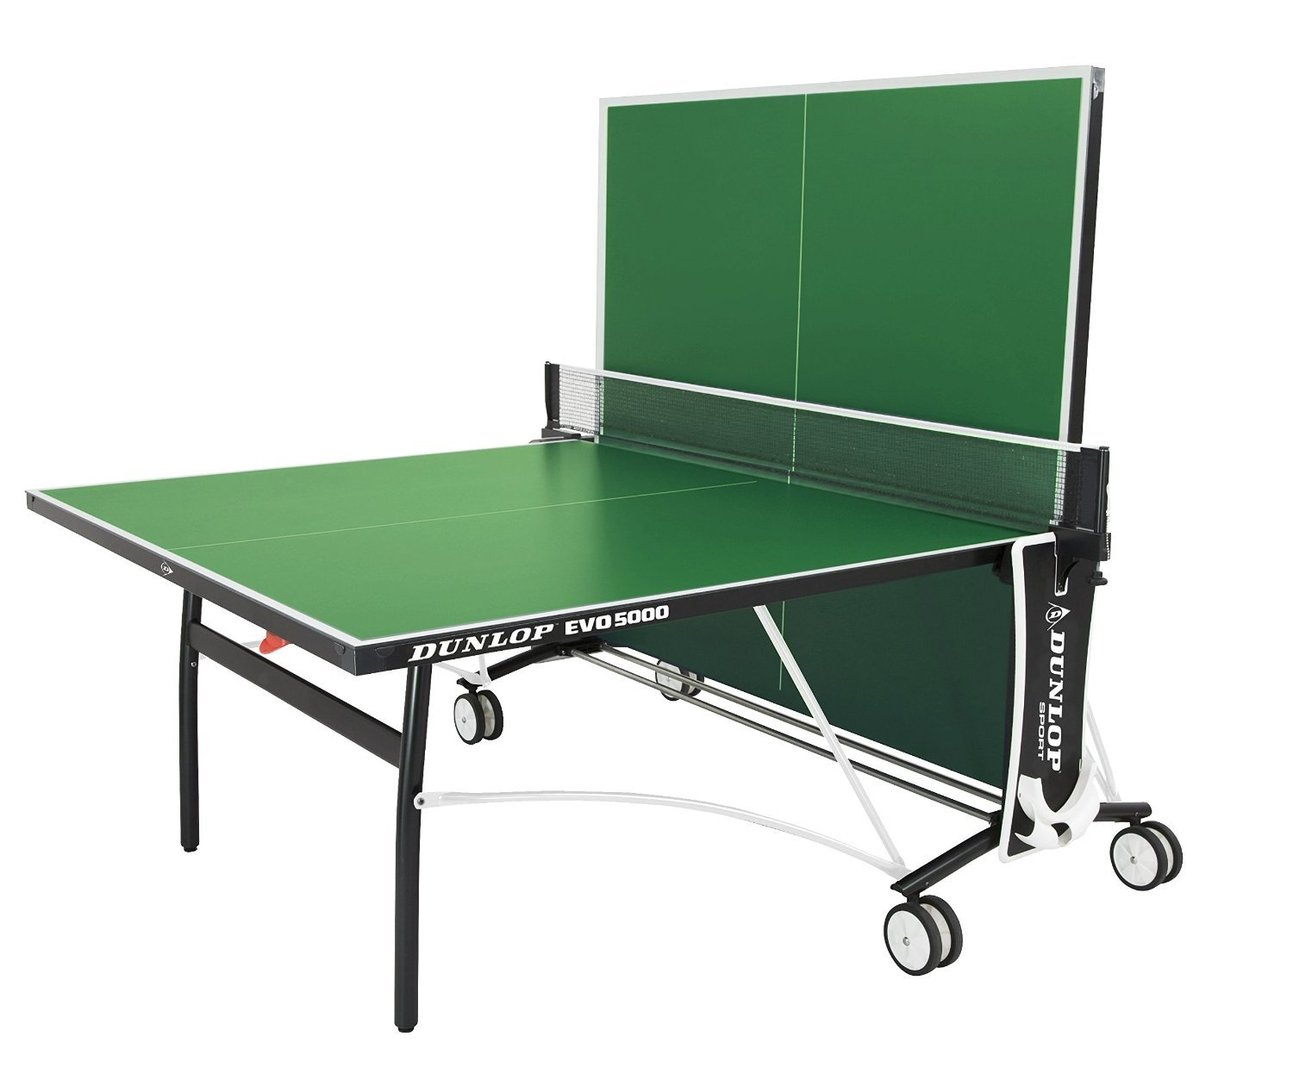 Dunlop evo 5000 full size outdoor table tennis table in green with bats balls and net included - Dimensions of a table tennis board ...